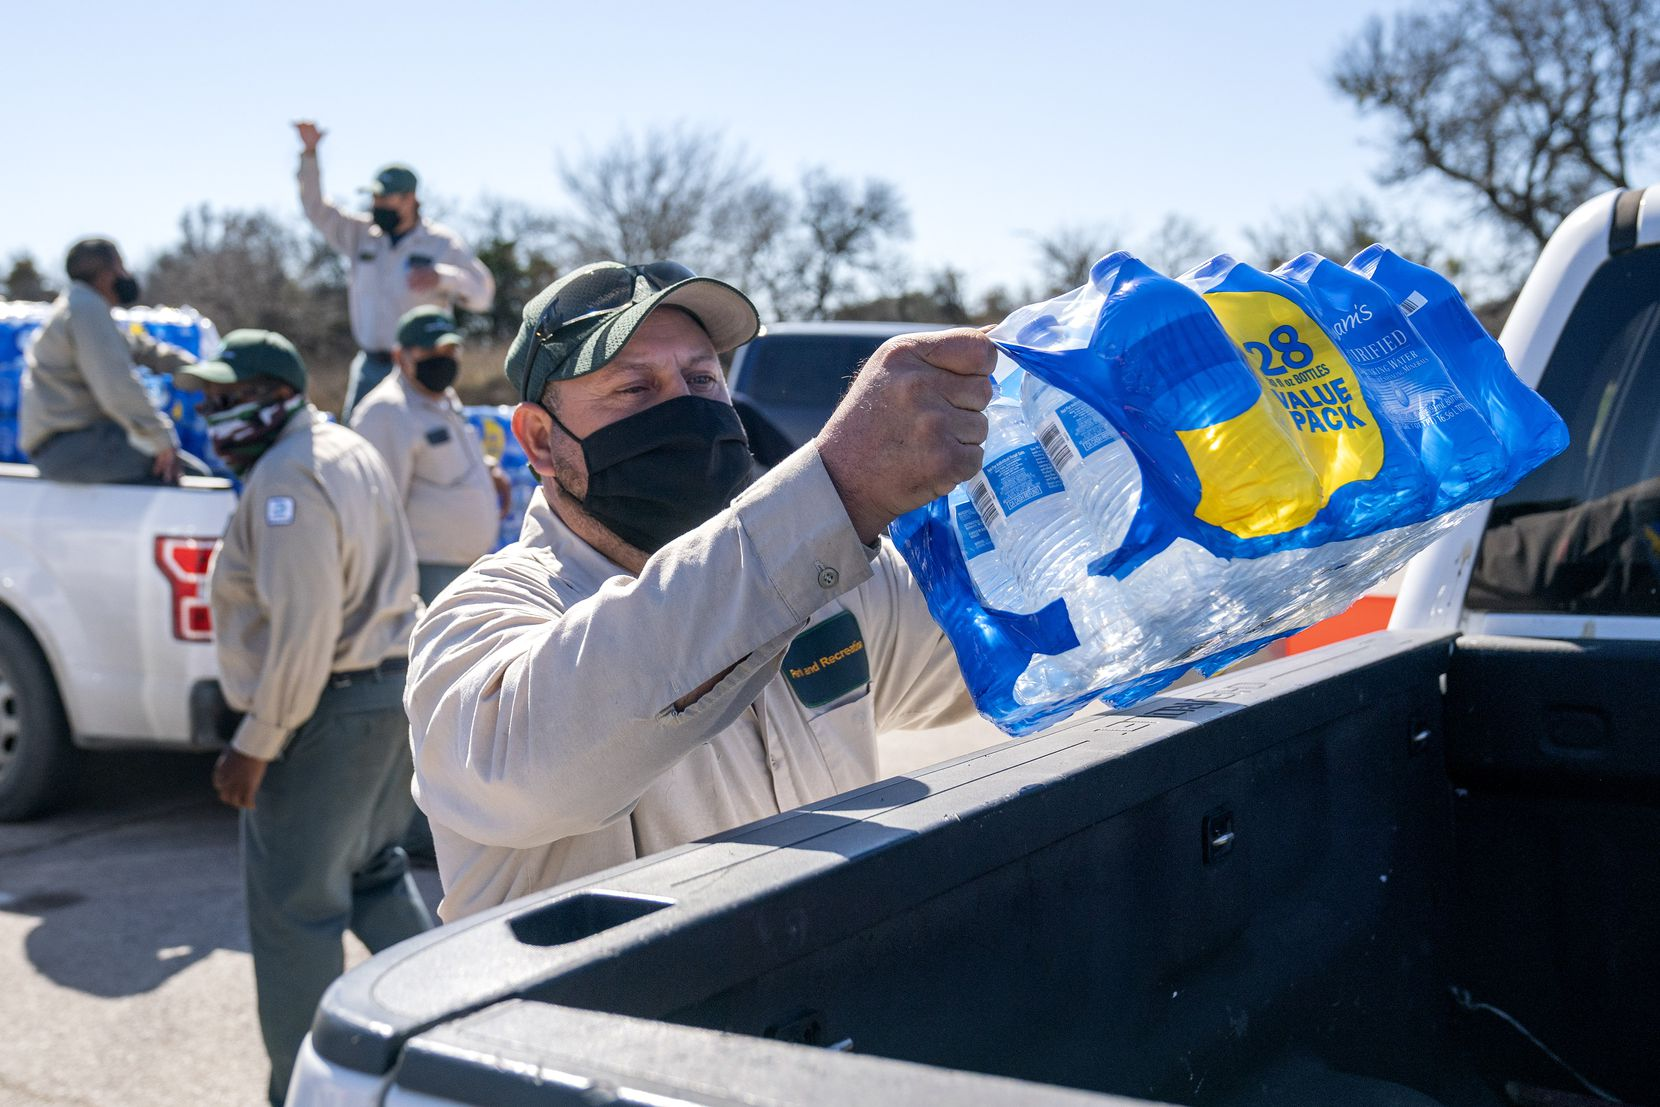 Jesus Muñiz loaded a case of bottled water in a pickup, Monday, February 22, 2021, during a water distribution organized by the City of Dallas Office of Emergency Management in response to snow storm Uri at Kiest Park Recreation Center in Oak Cliff.